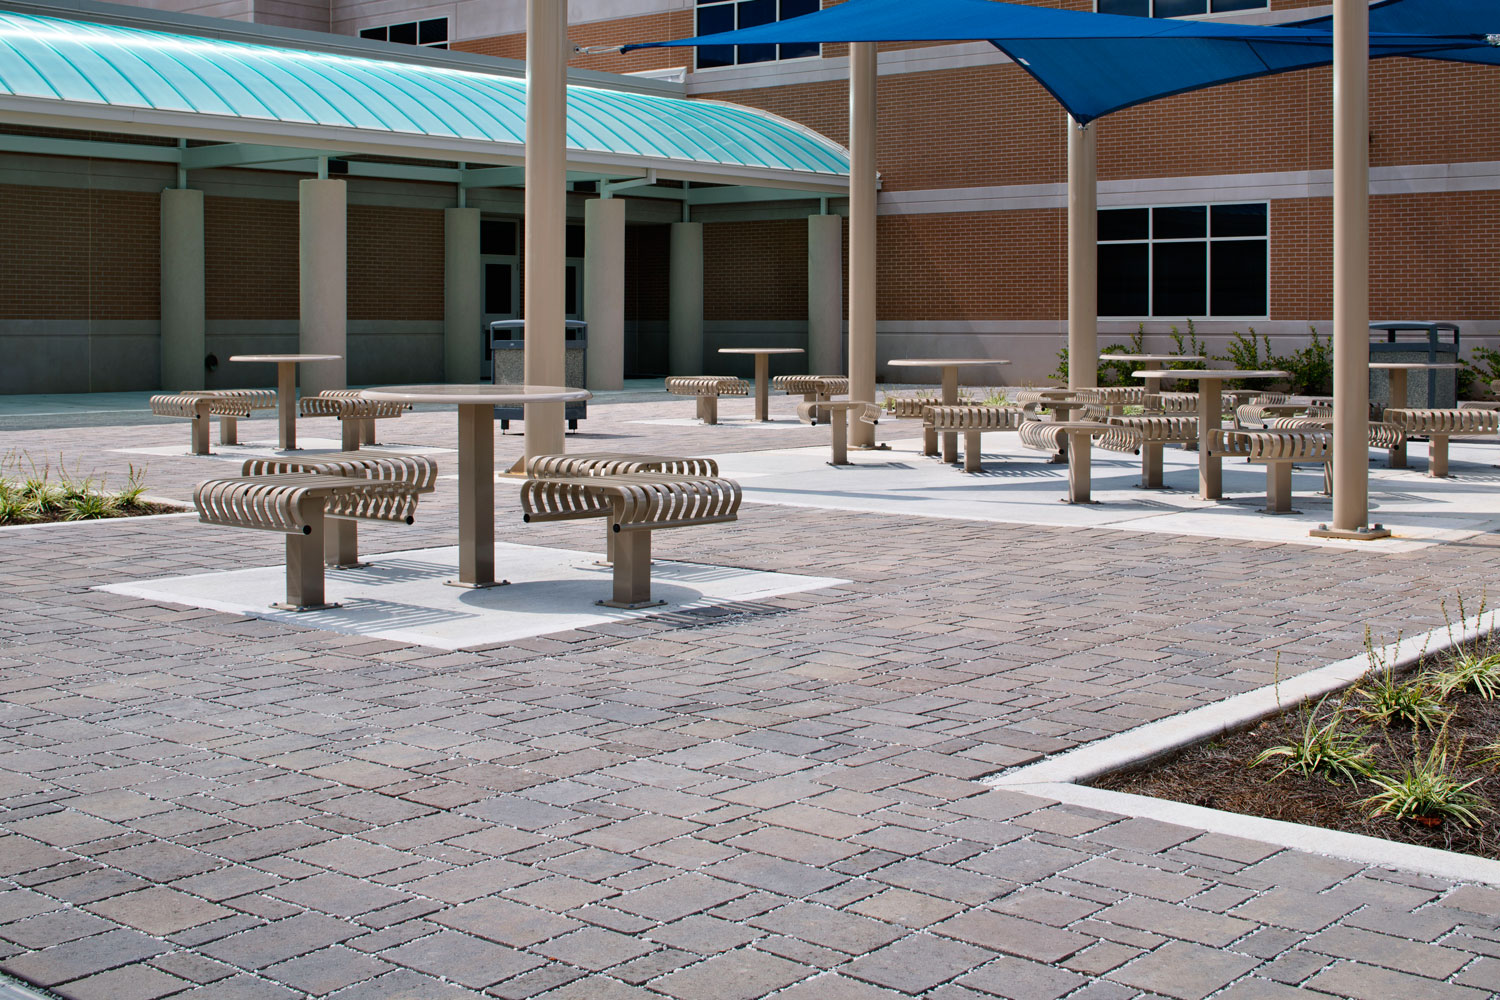 Specifications for paver installation for architects